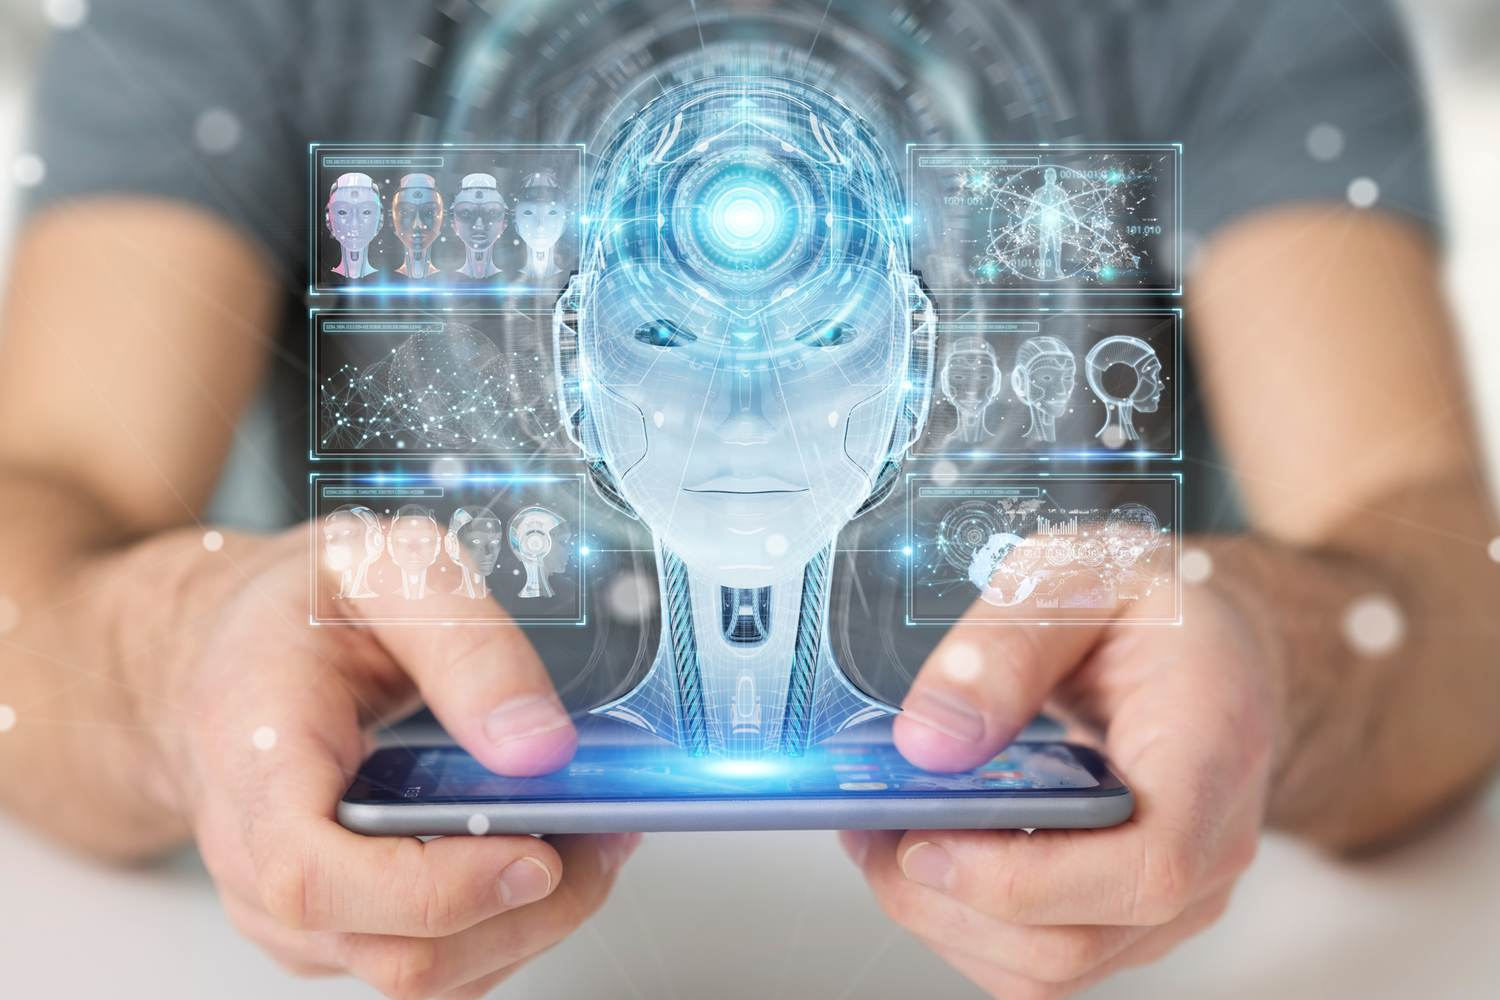 Man holding smartphone with AI robot hologram projecting from it